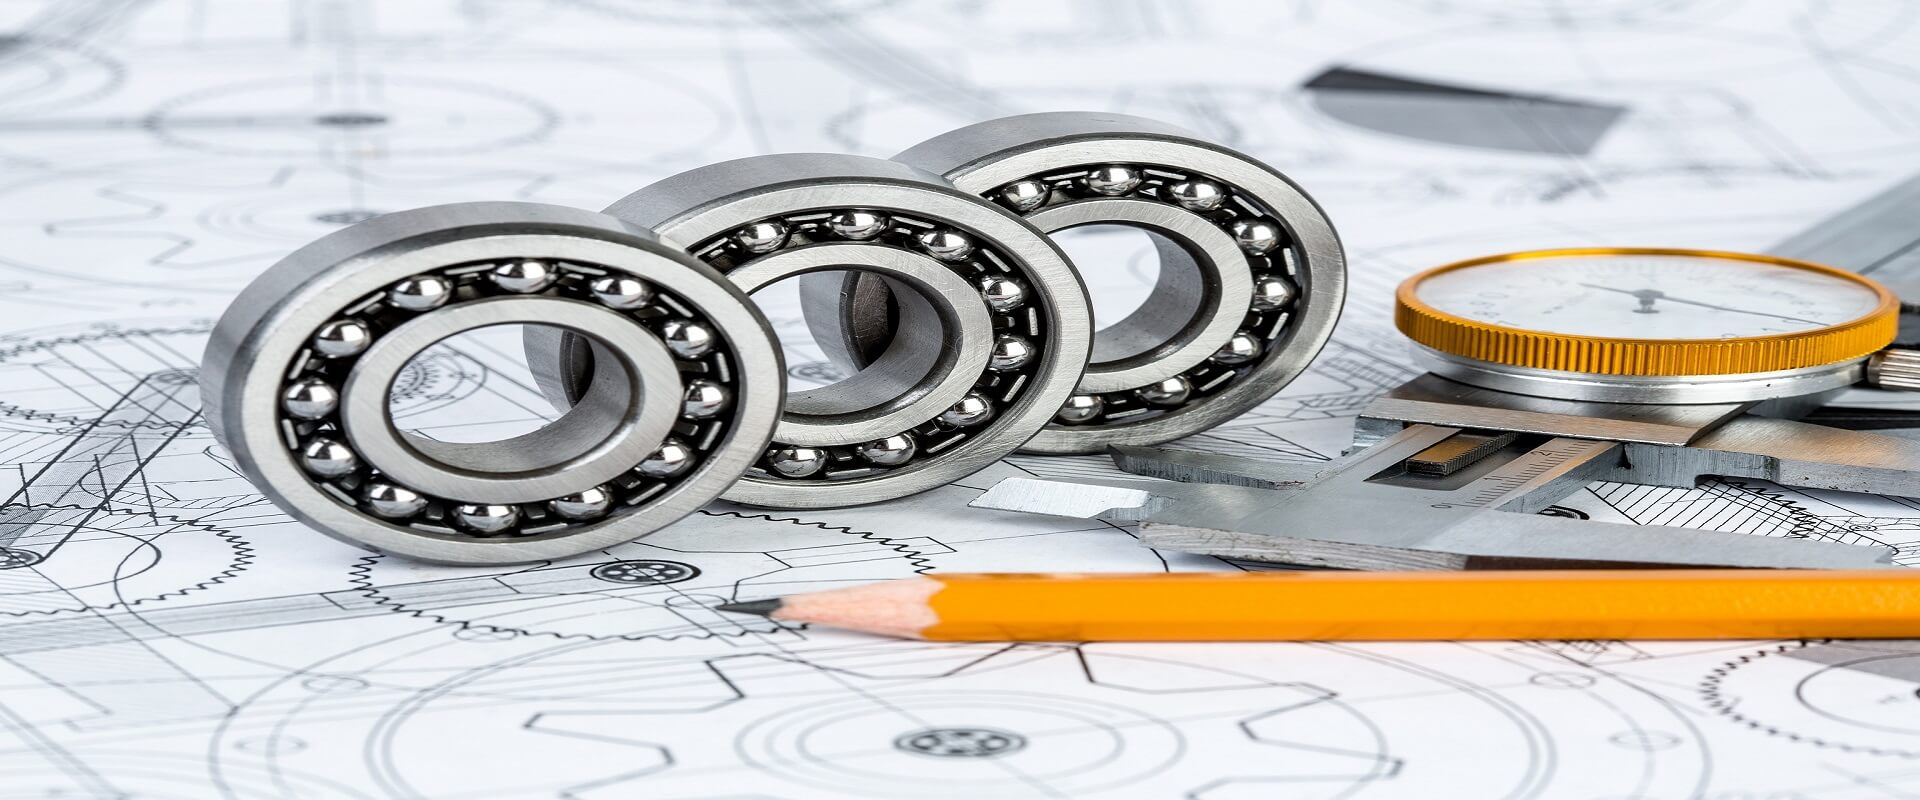 ktaiballbearing design drawing banner